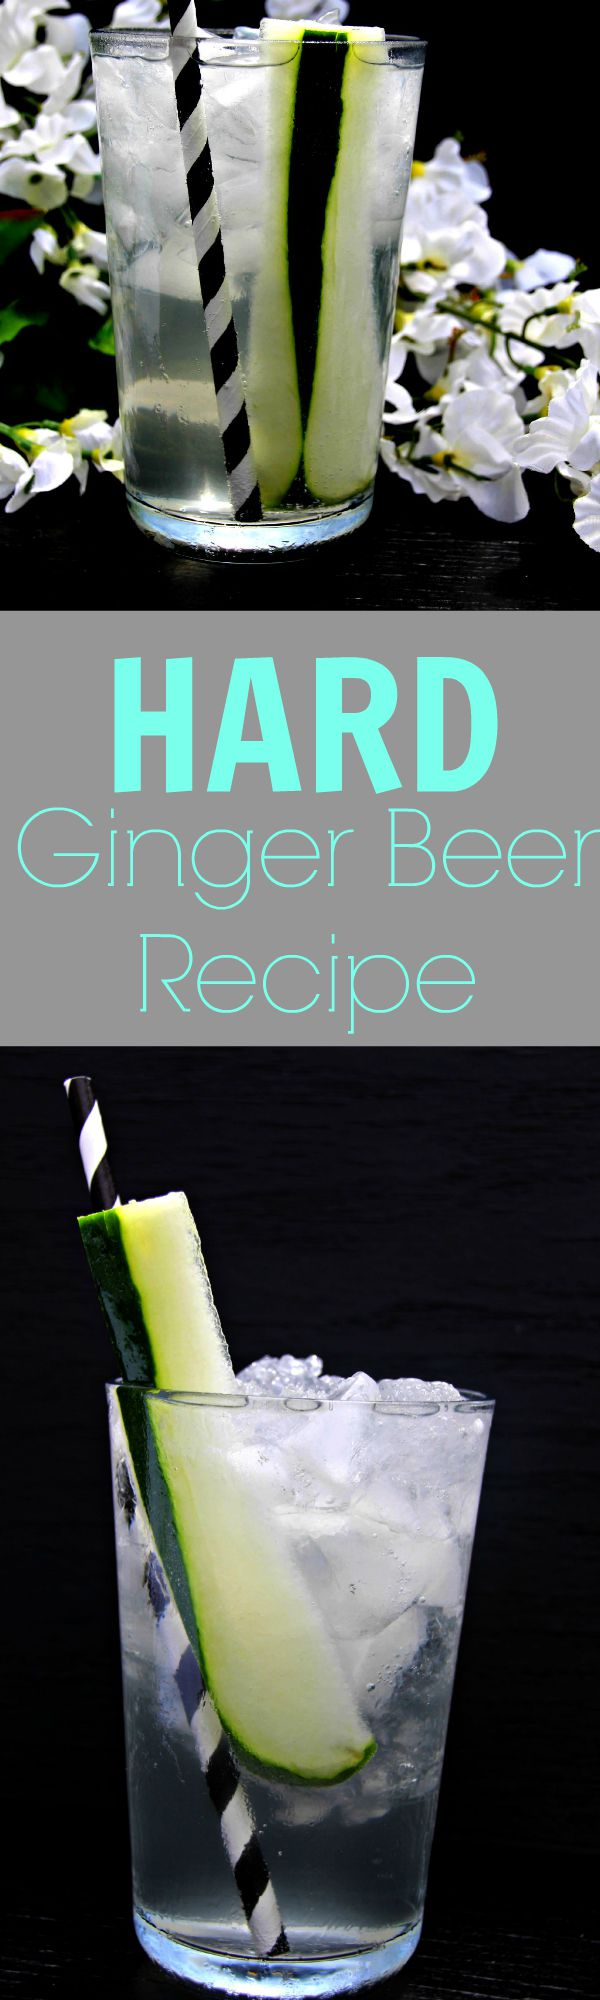 Recipe for Hard Ginger Beer